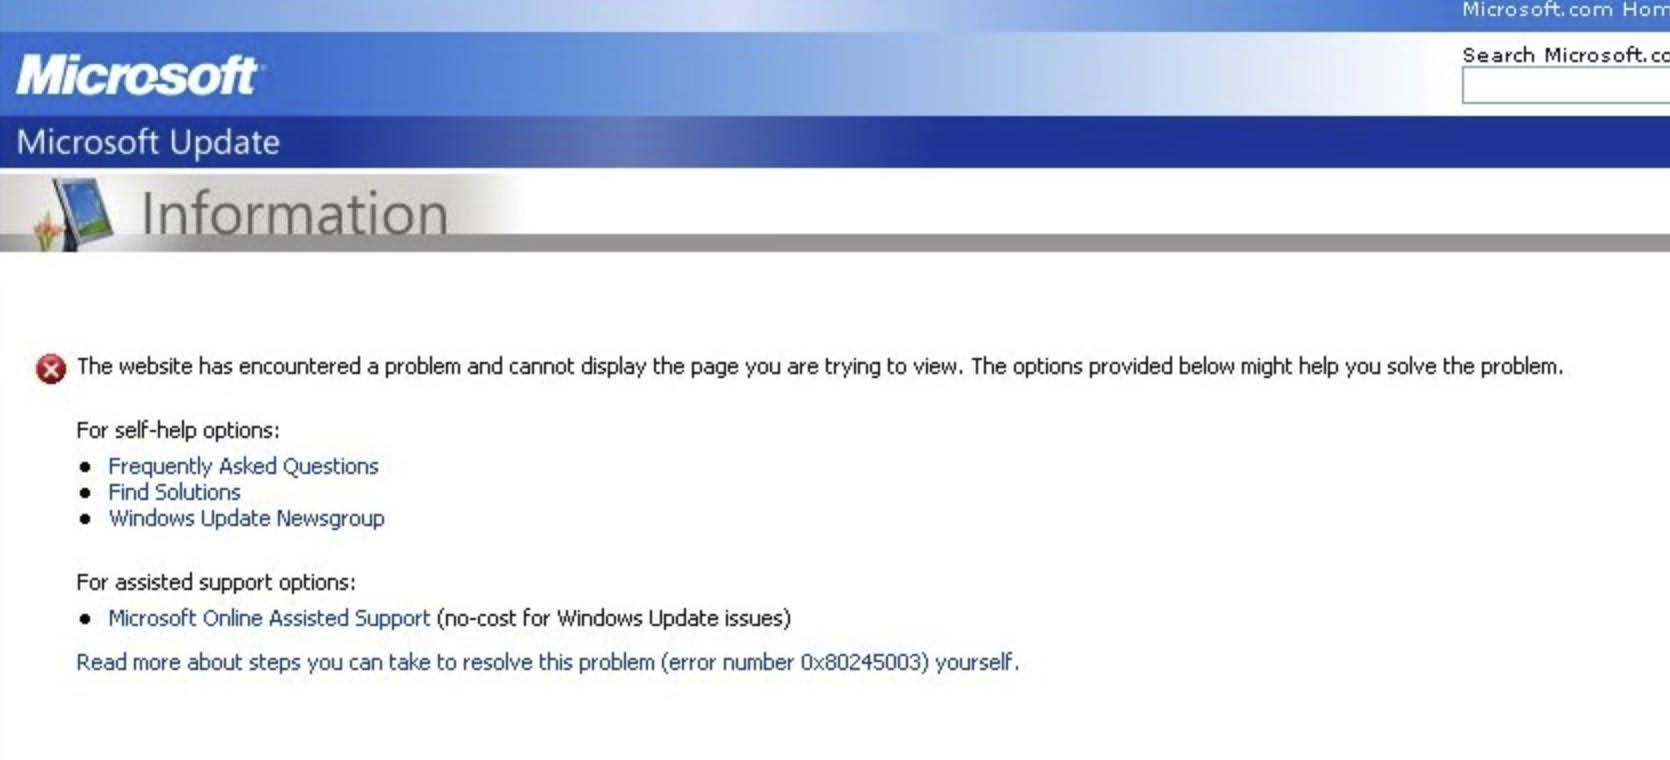 The website has encountered a problem and cannot display the page you are trying to view.